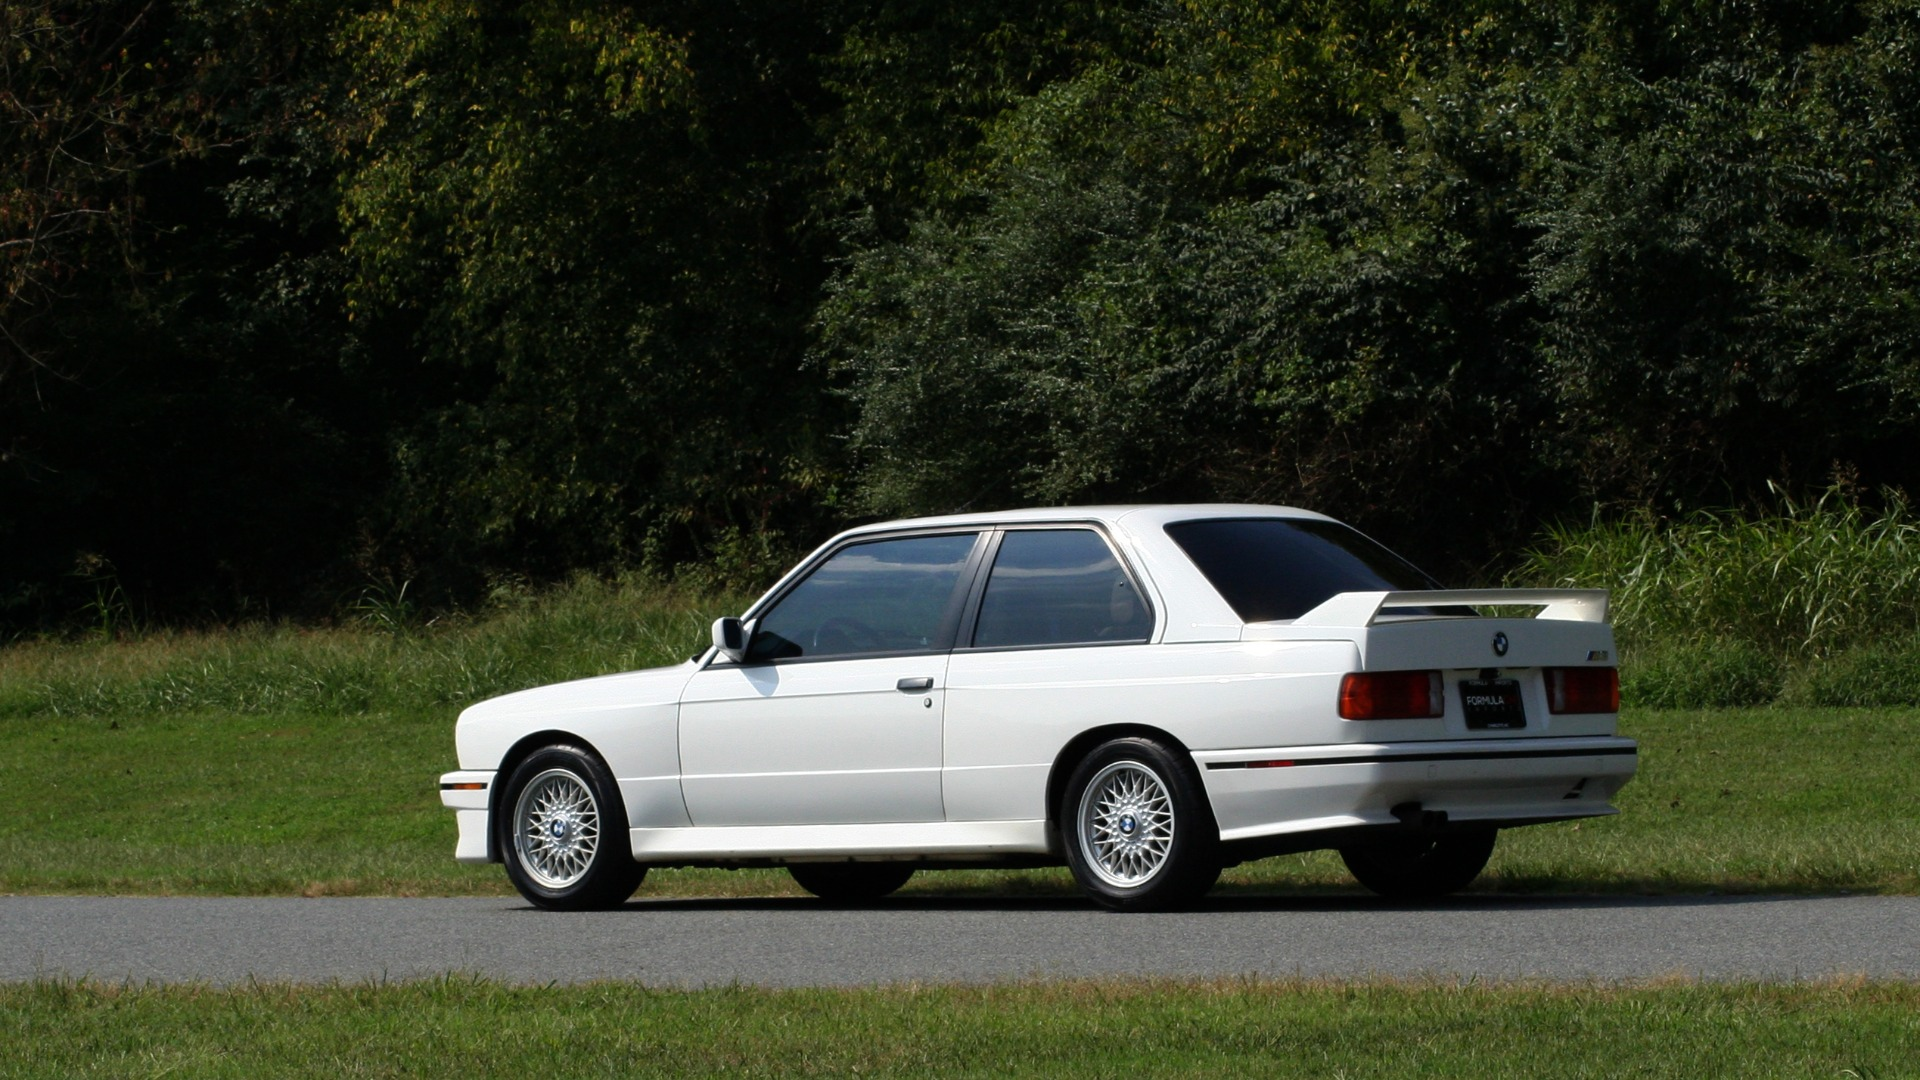 Used 1989 BMW M3 COUPE 2DR / 5-SPEED MAN / LOW MILES / SUPER CLEAN for sale Sold at Formula Imports in Charlotte NC 28227 4